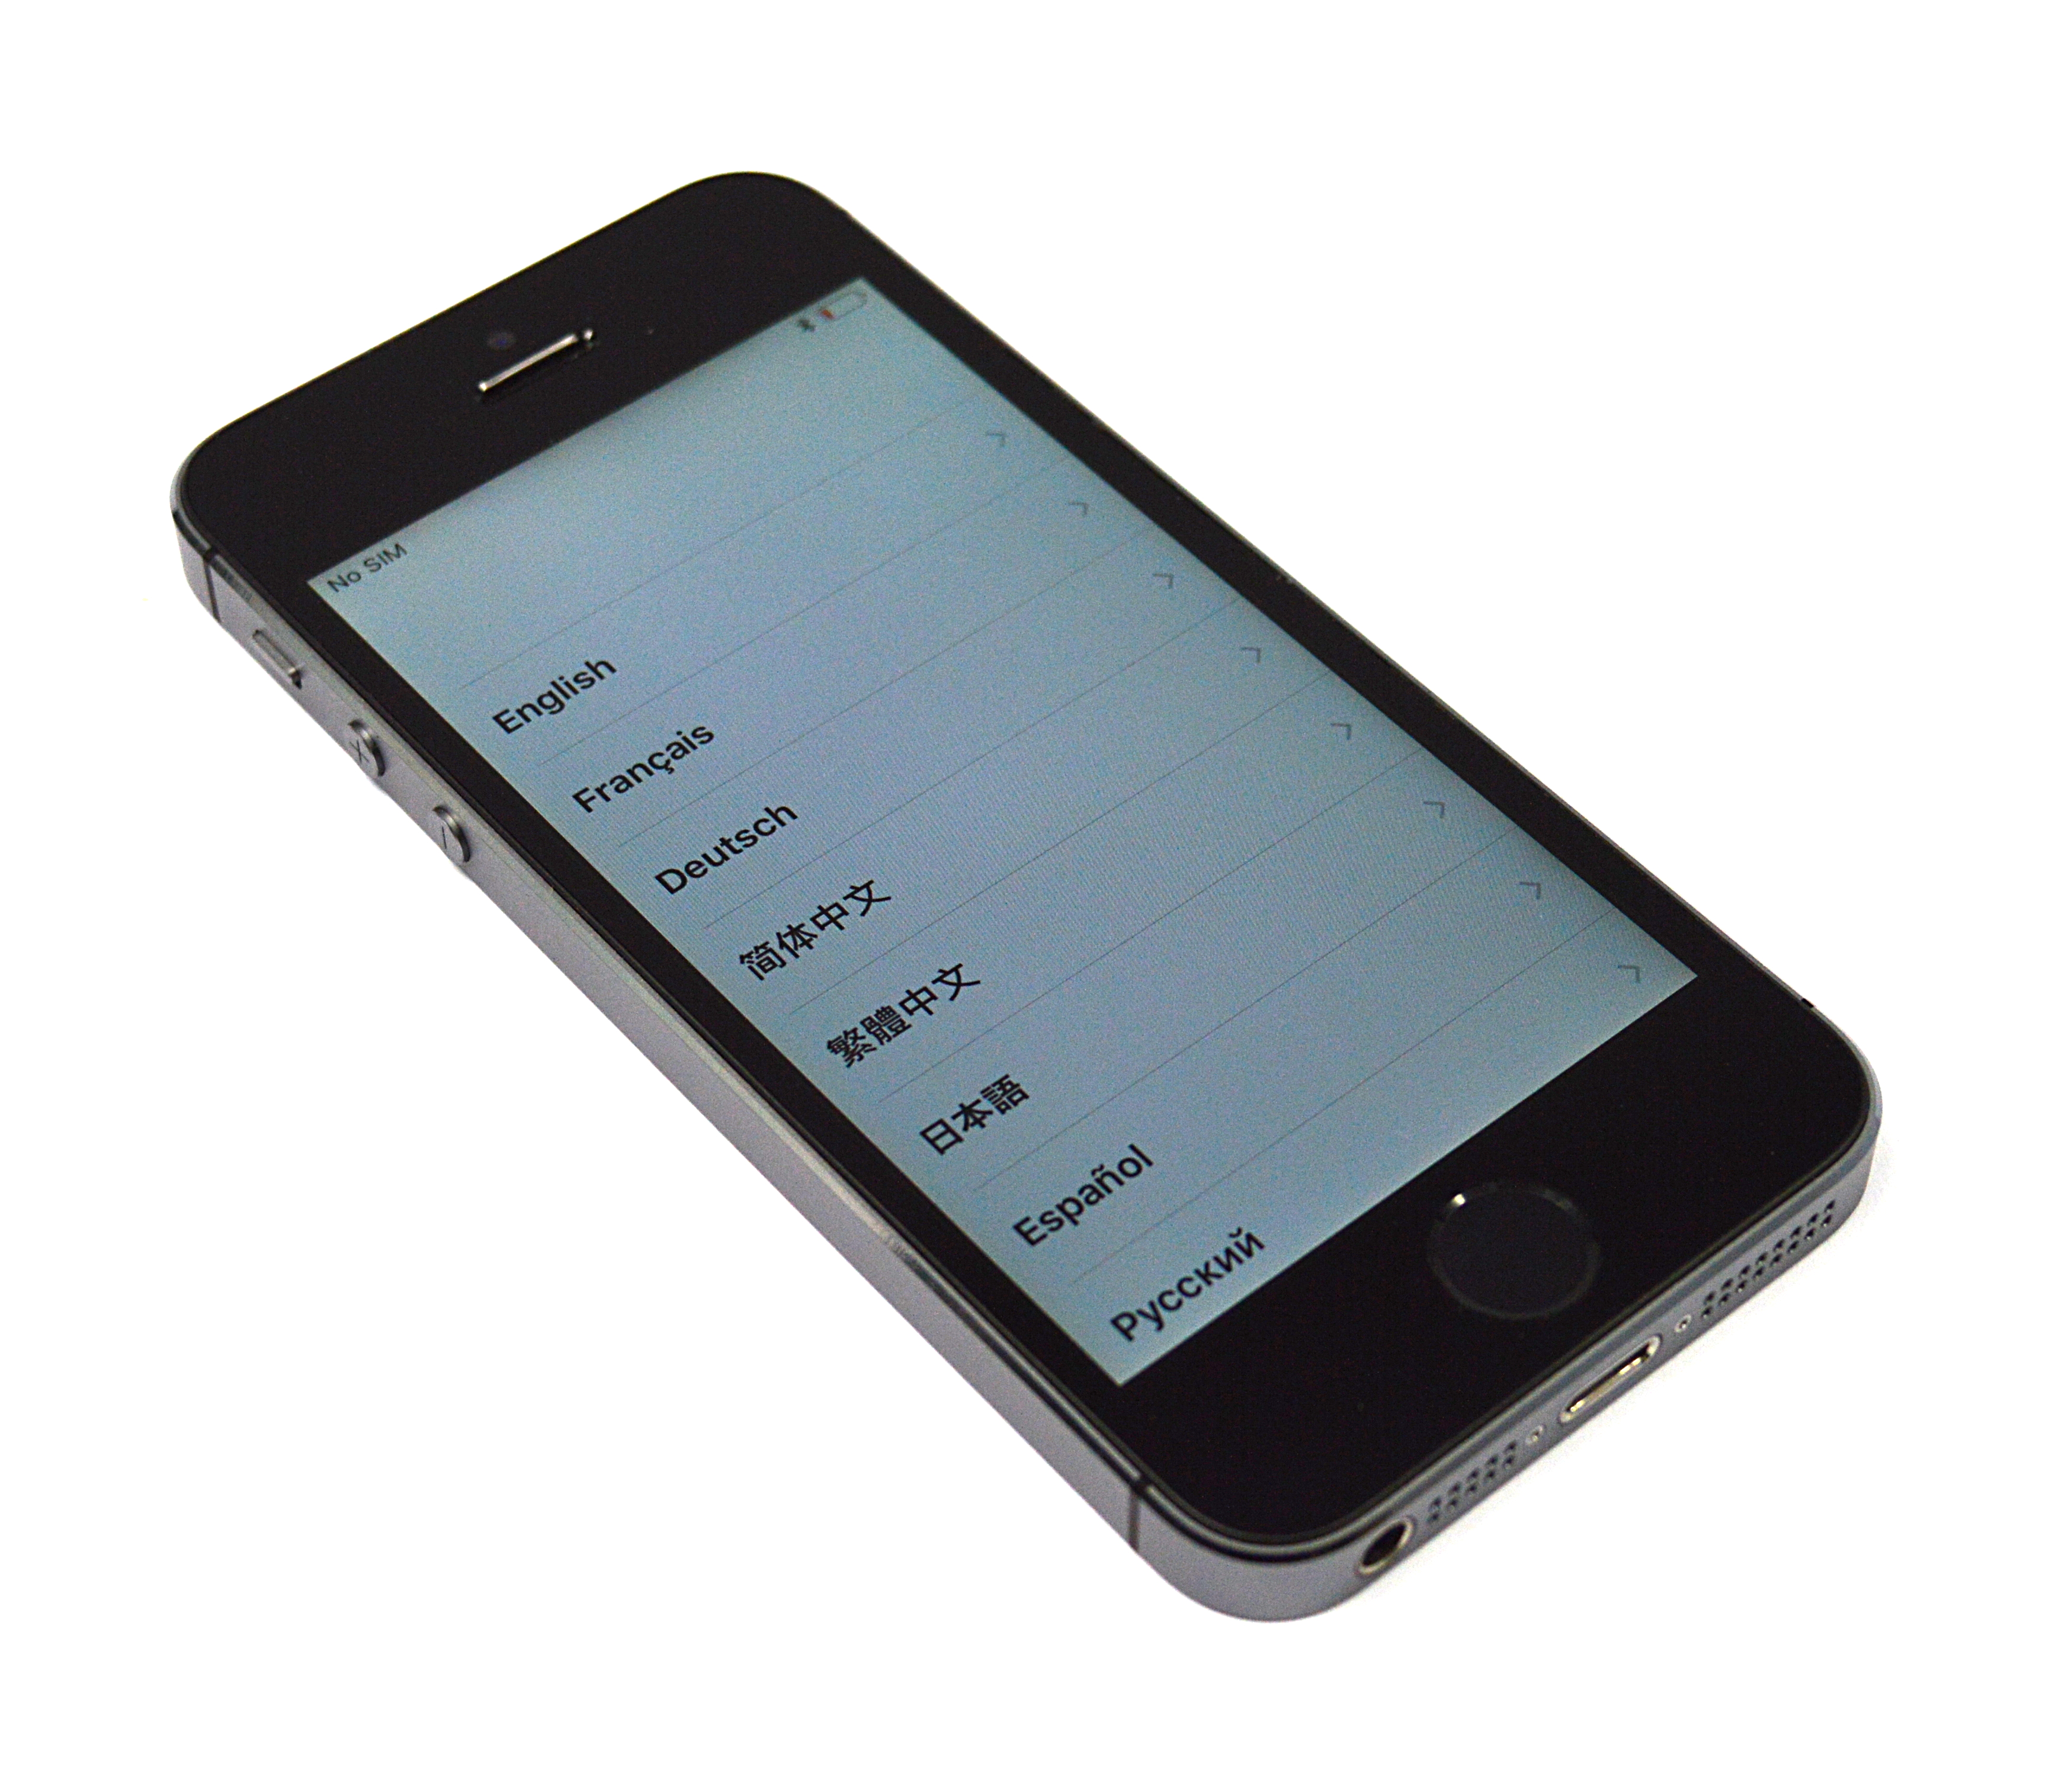 apple iphone model a1457 price